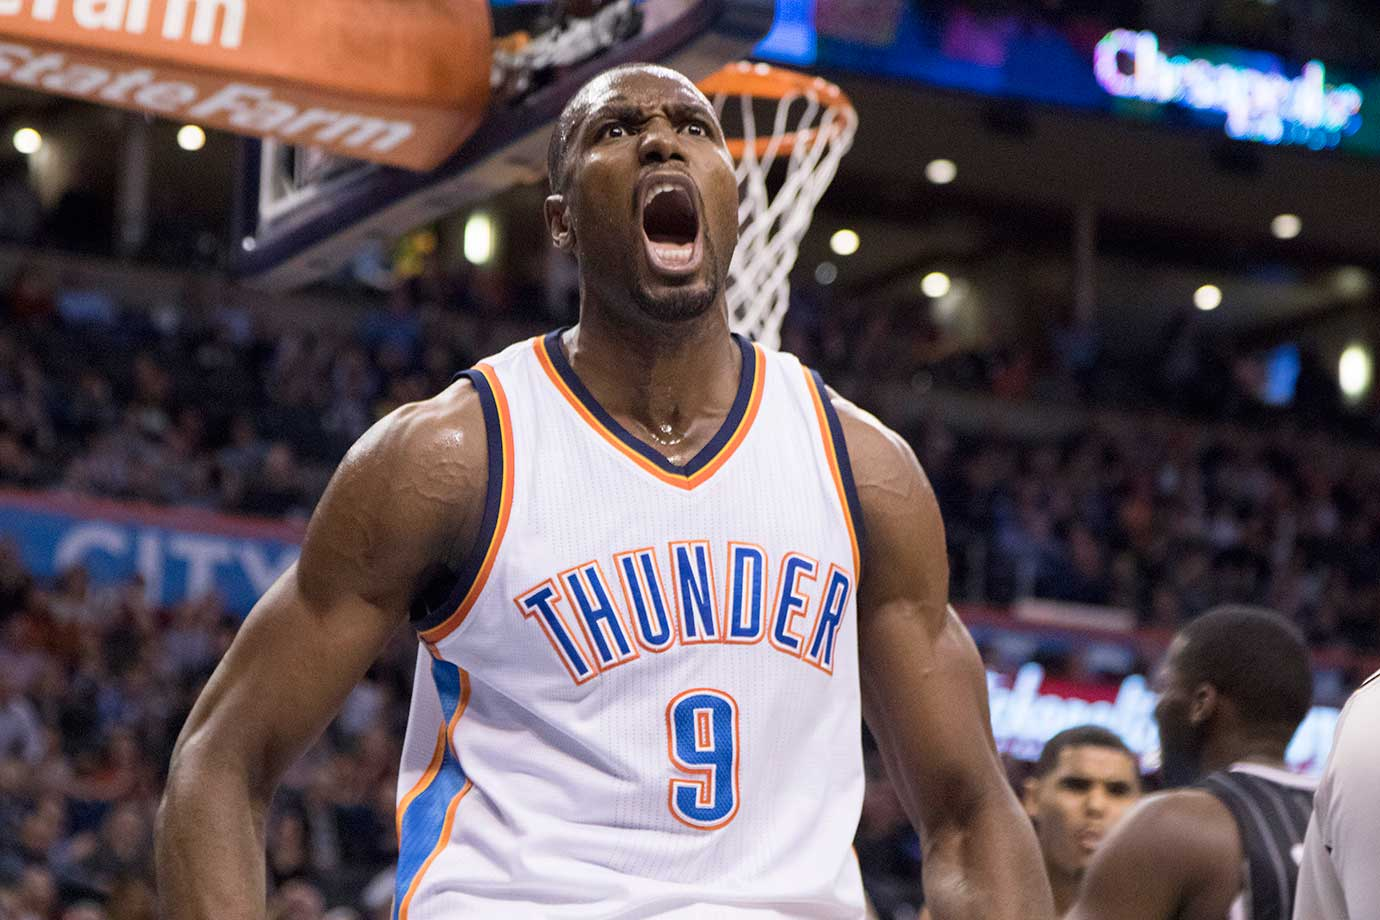 Oklahoma City Thunder forward Serge Ibaka reacts after he was fouled while making a two point shot against the Orlando Magic in Oklahoma City. The Thunder won 117-114.